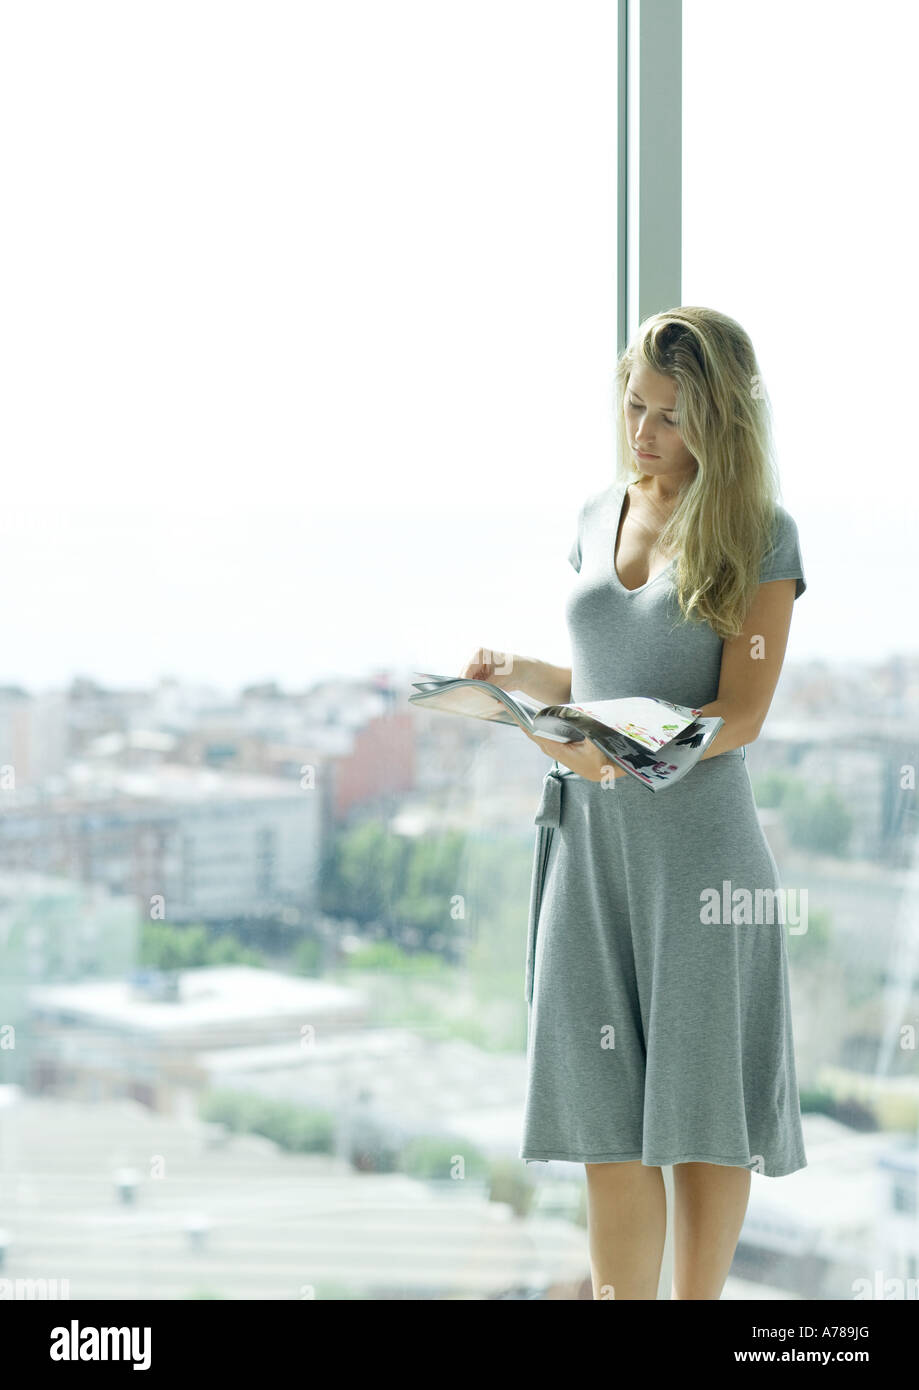 Young woman standing by window, looking at magazine - Stock Image